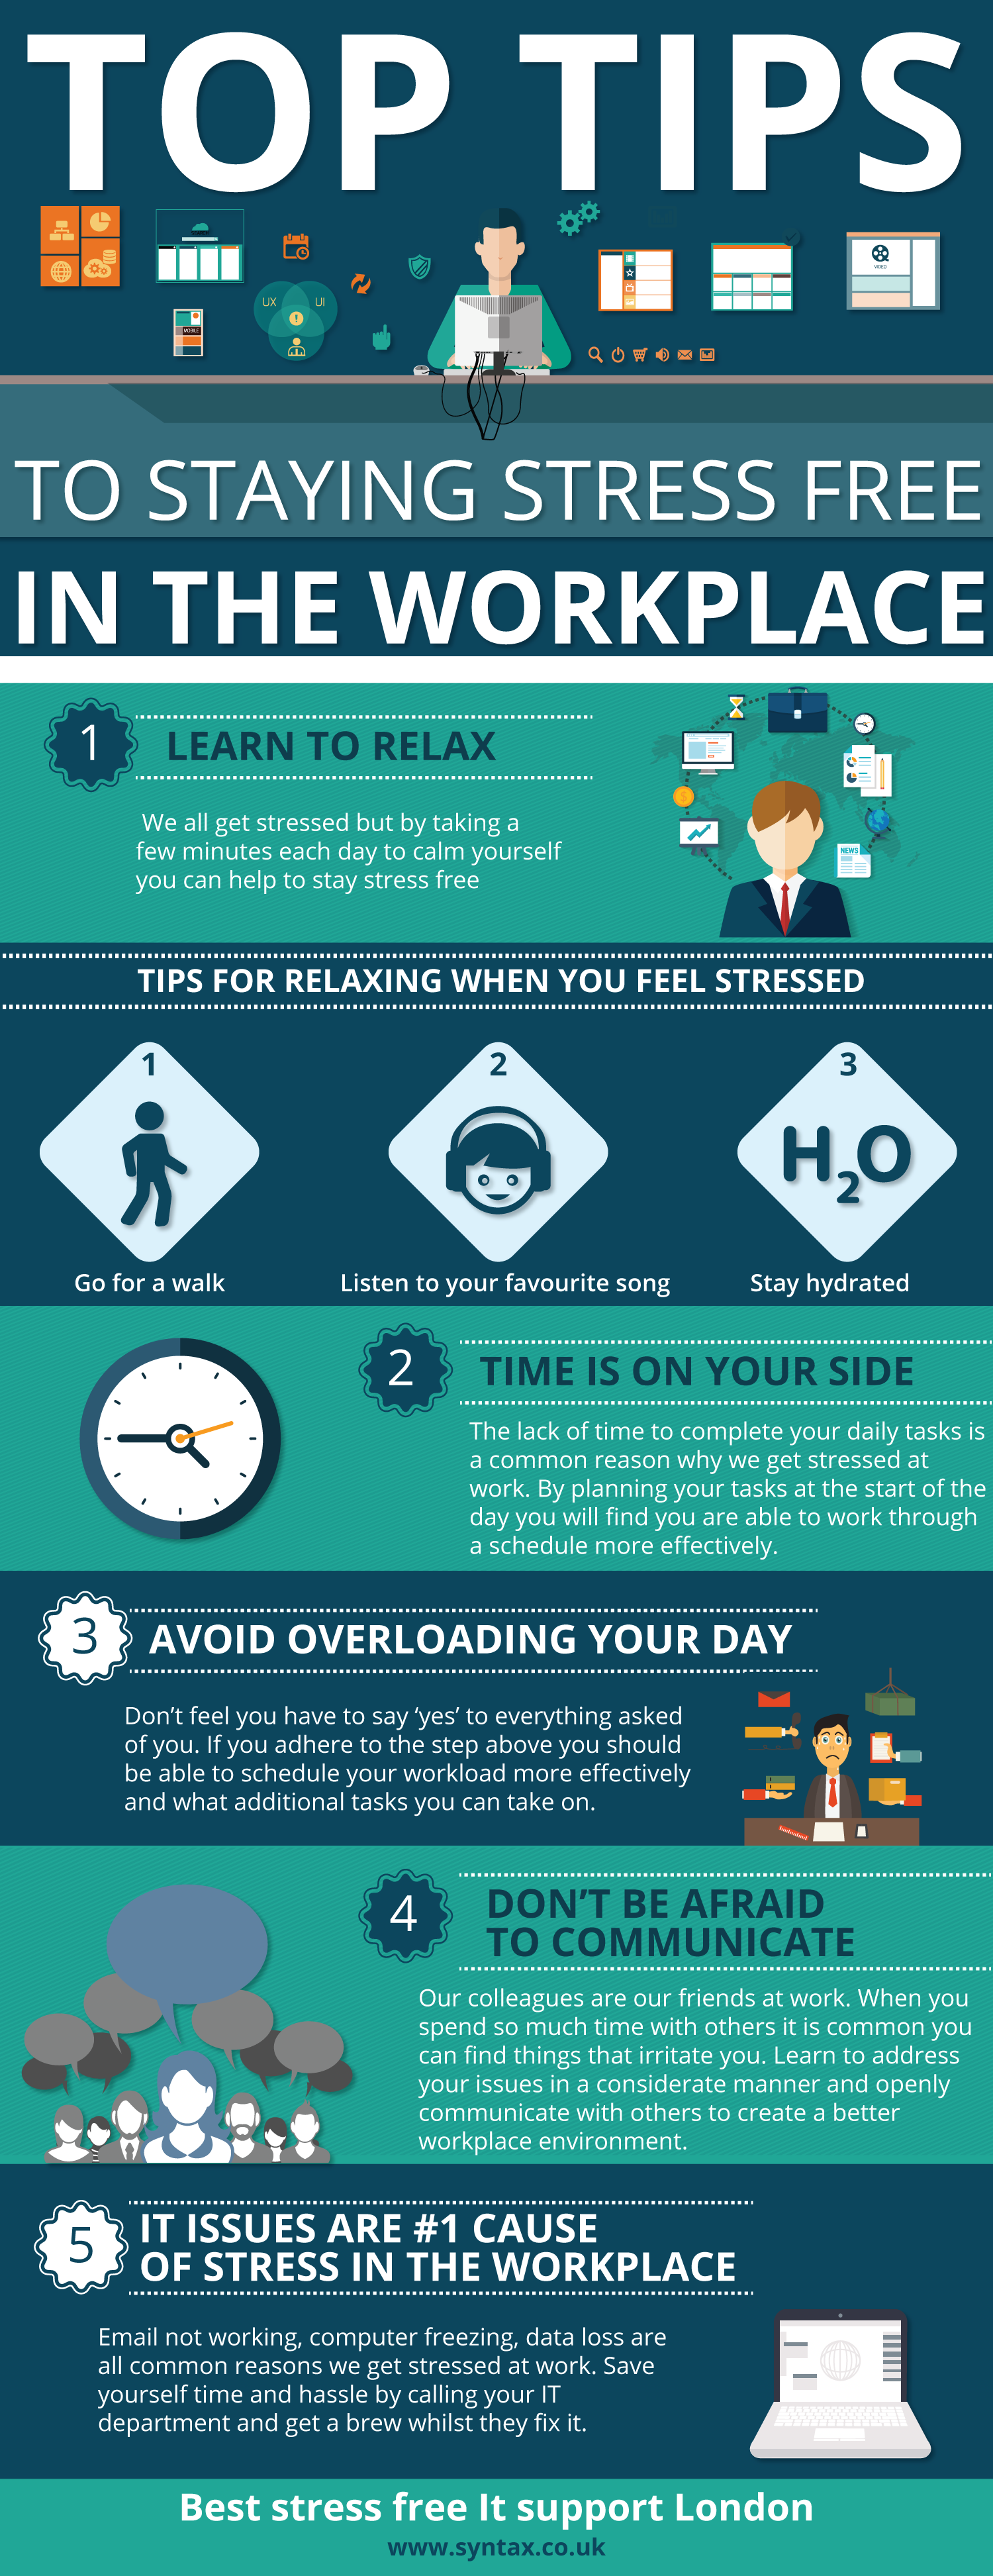 Top tips for staying stress free in the workplace